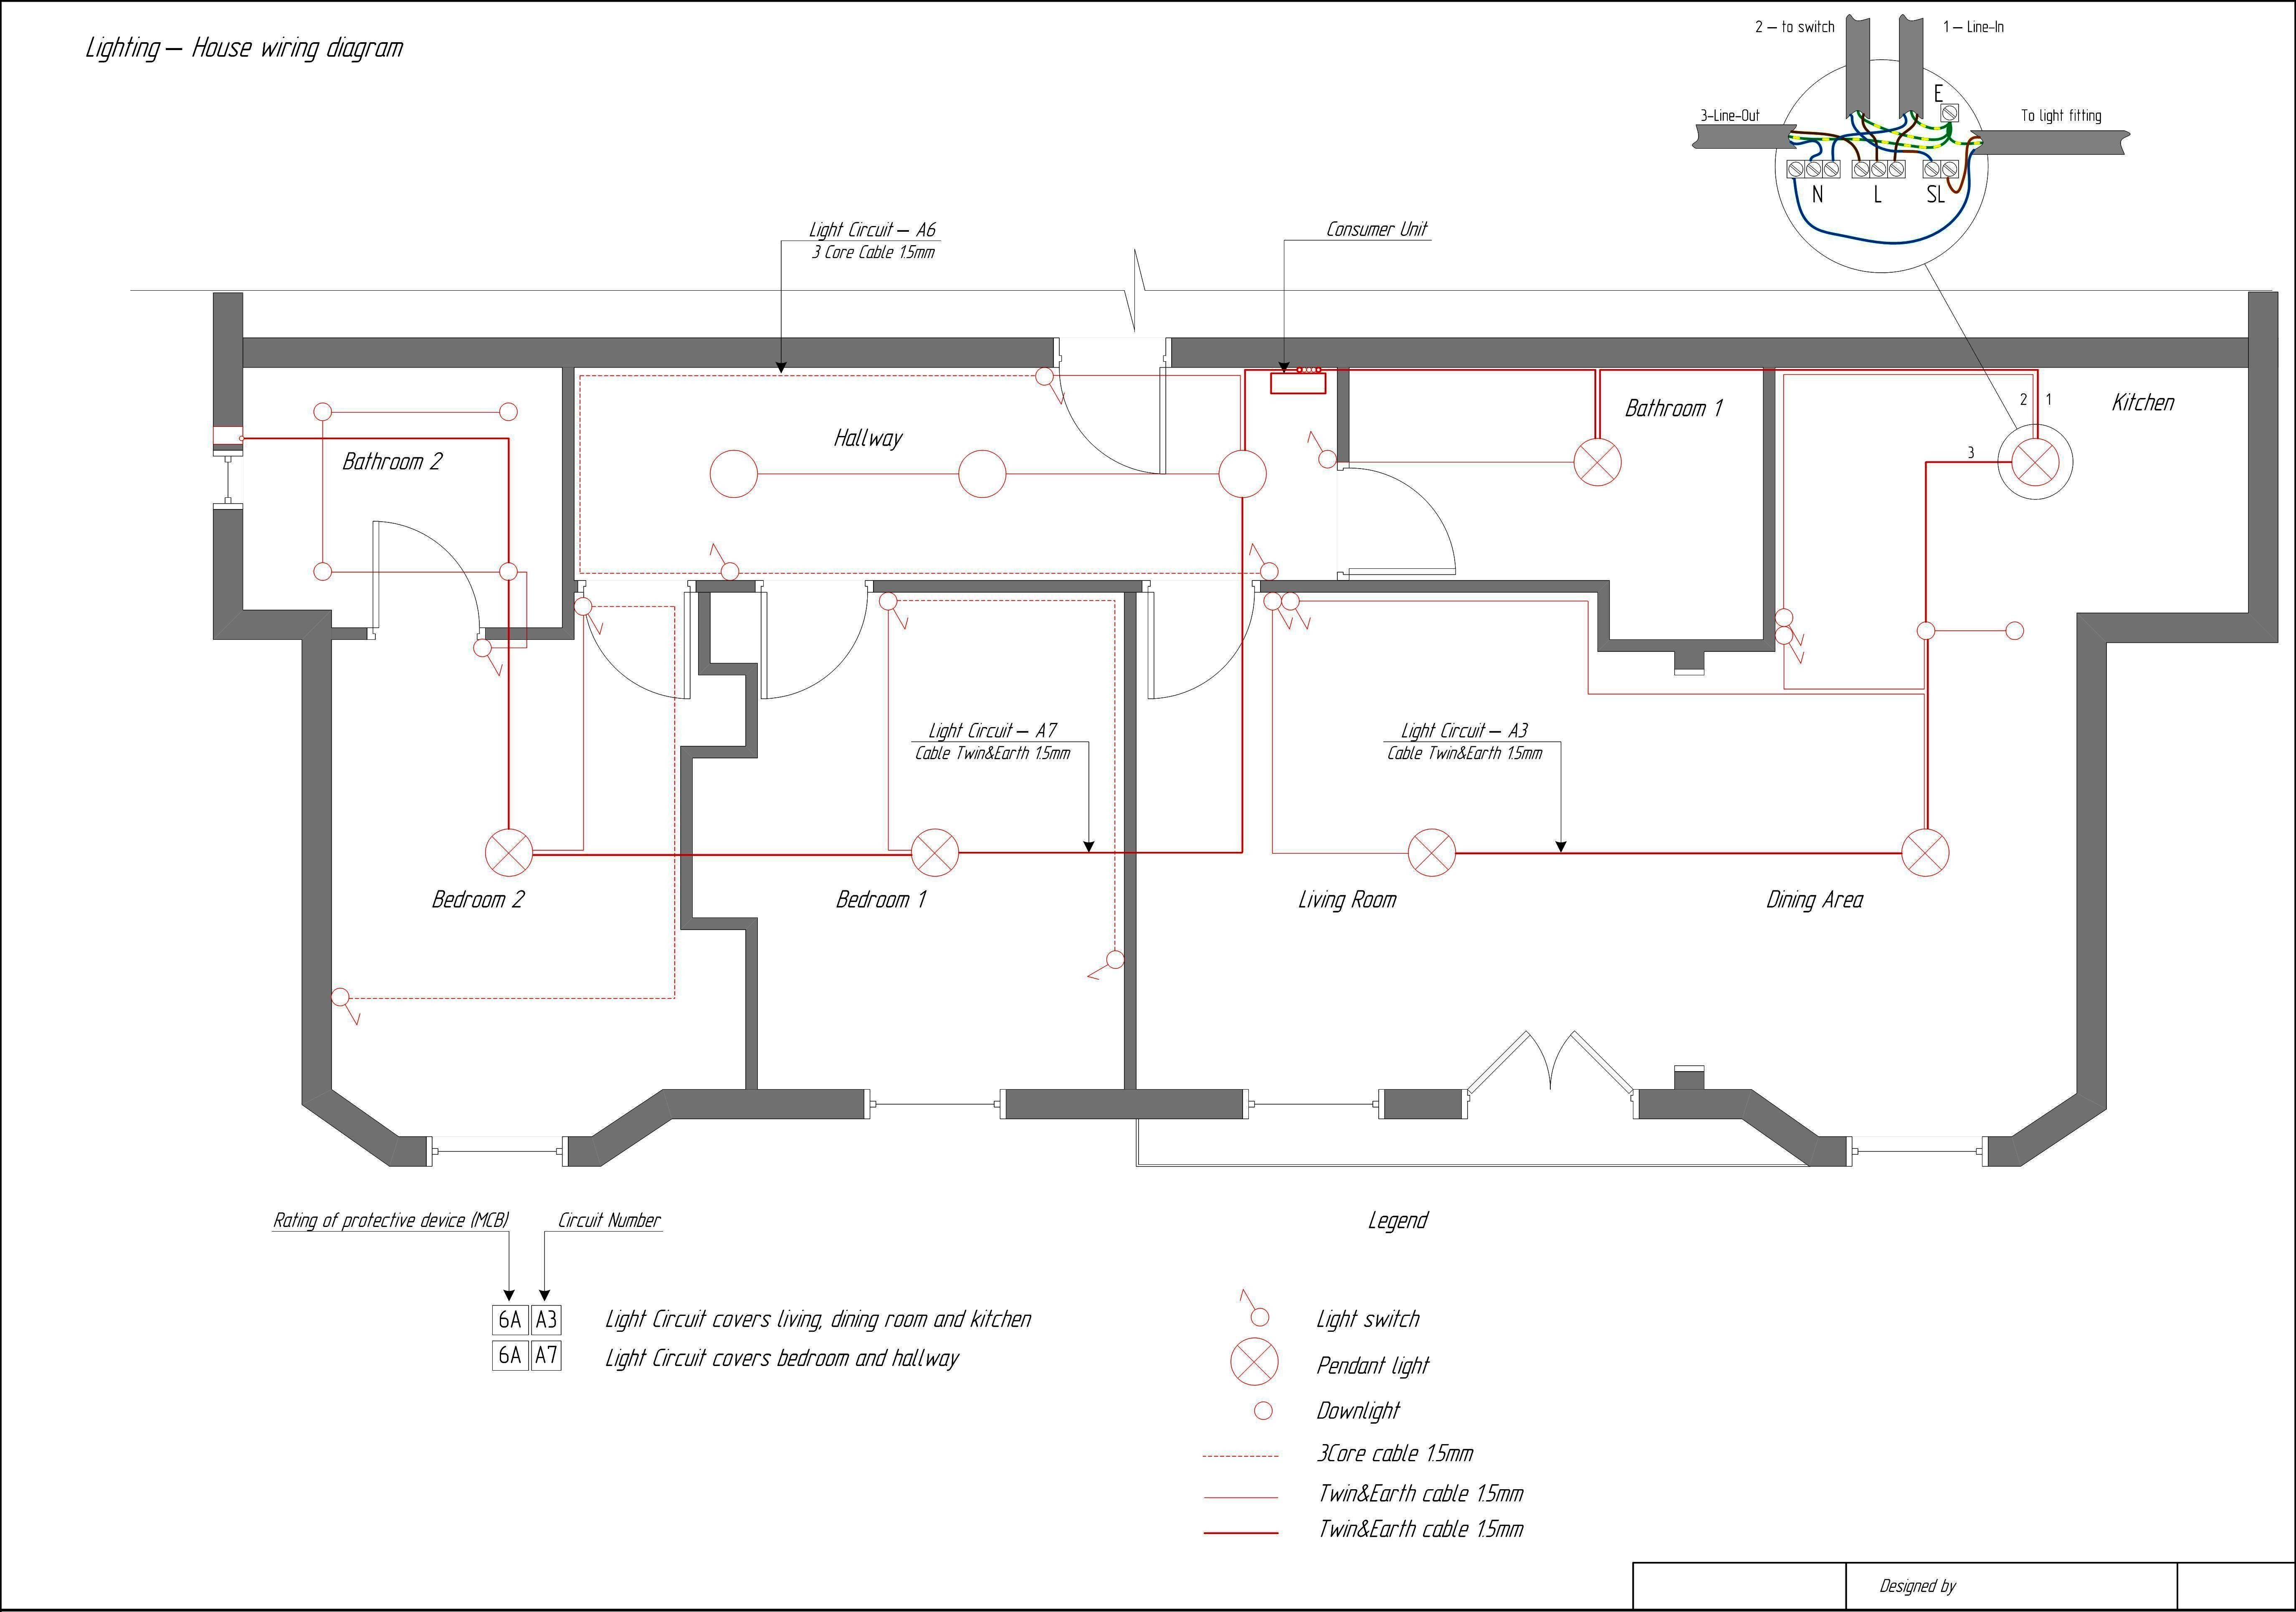 Household Electric Circuit New Typical House Wiring Circuit Diagram Wiring  Diagram Add   House wiring, Electrical circuit diagram, Electrical wiring  diagramPinterest